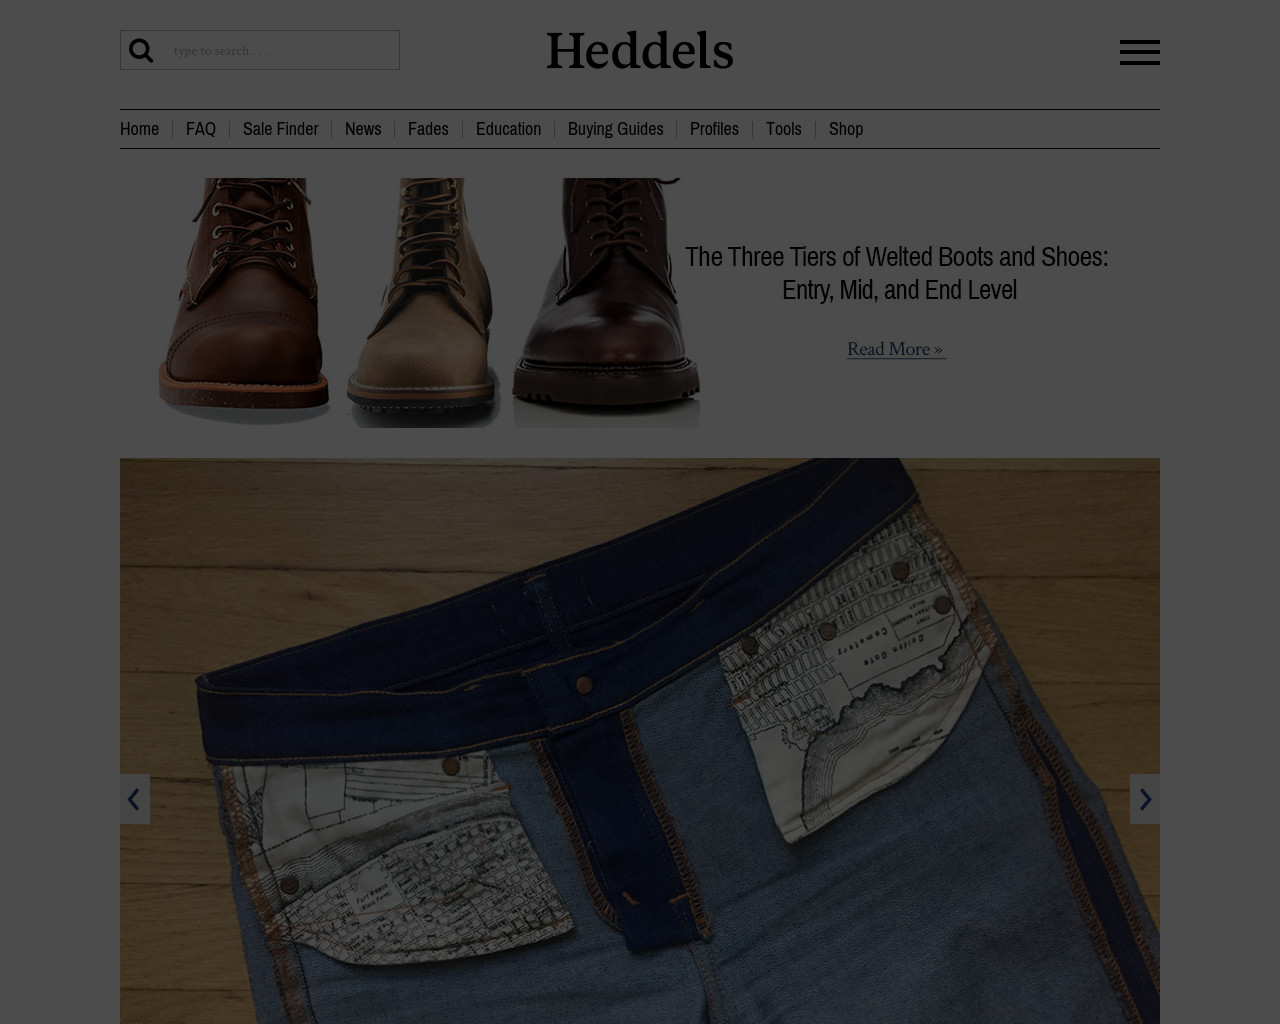 Heddels-Advertising-Reviews-Pricing